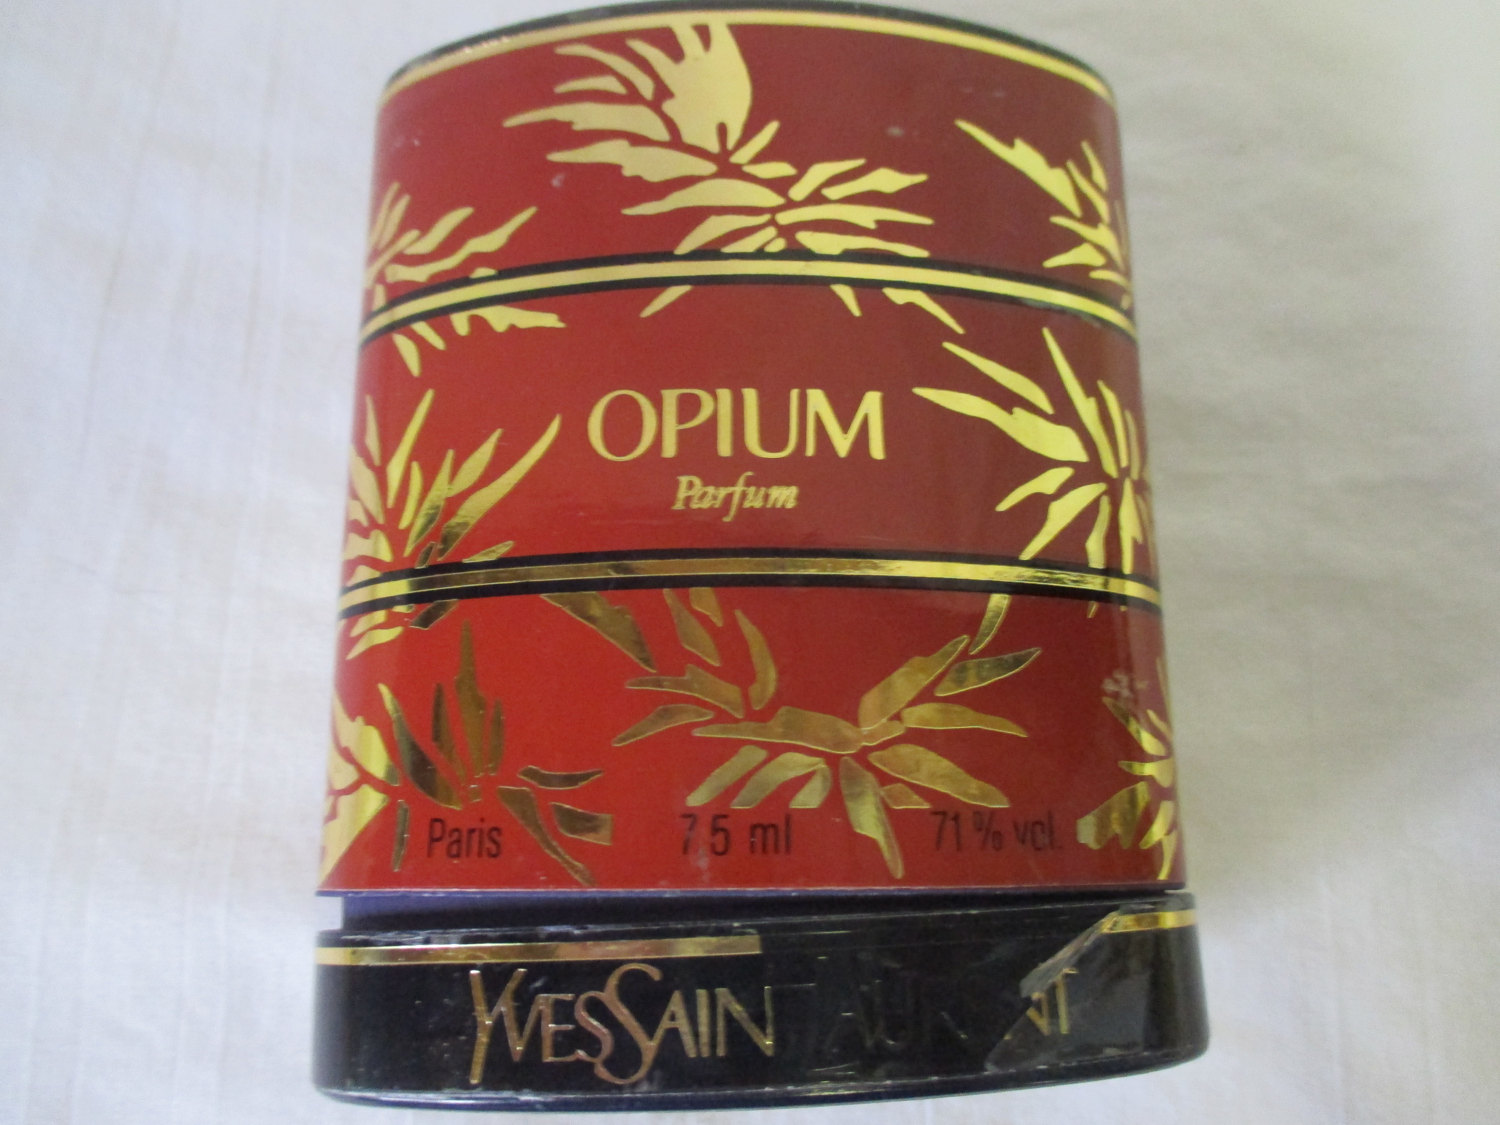 Vintage RARE OPIUM PARFUM sealed Yves Saint Laurent 7.5ml 1/4oz New Old  Stock